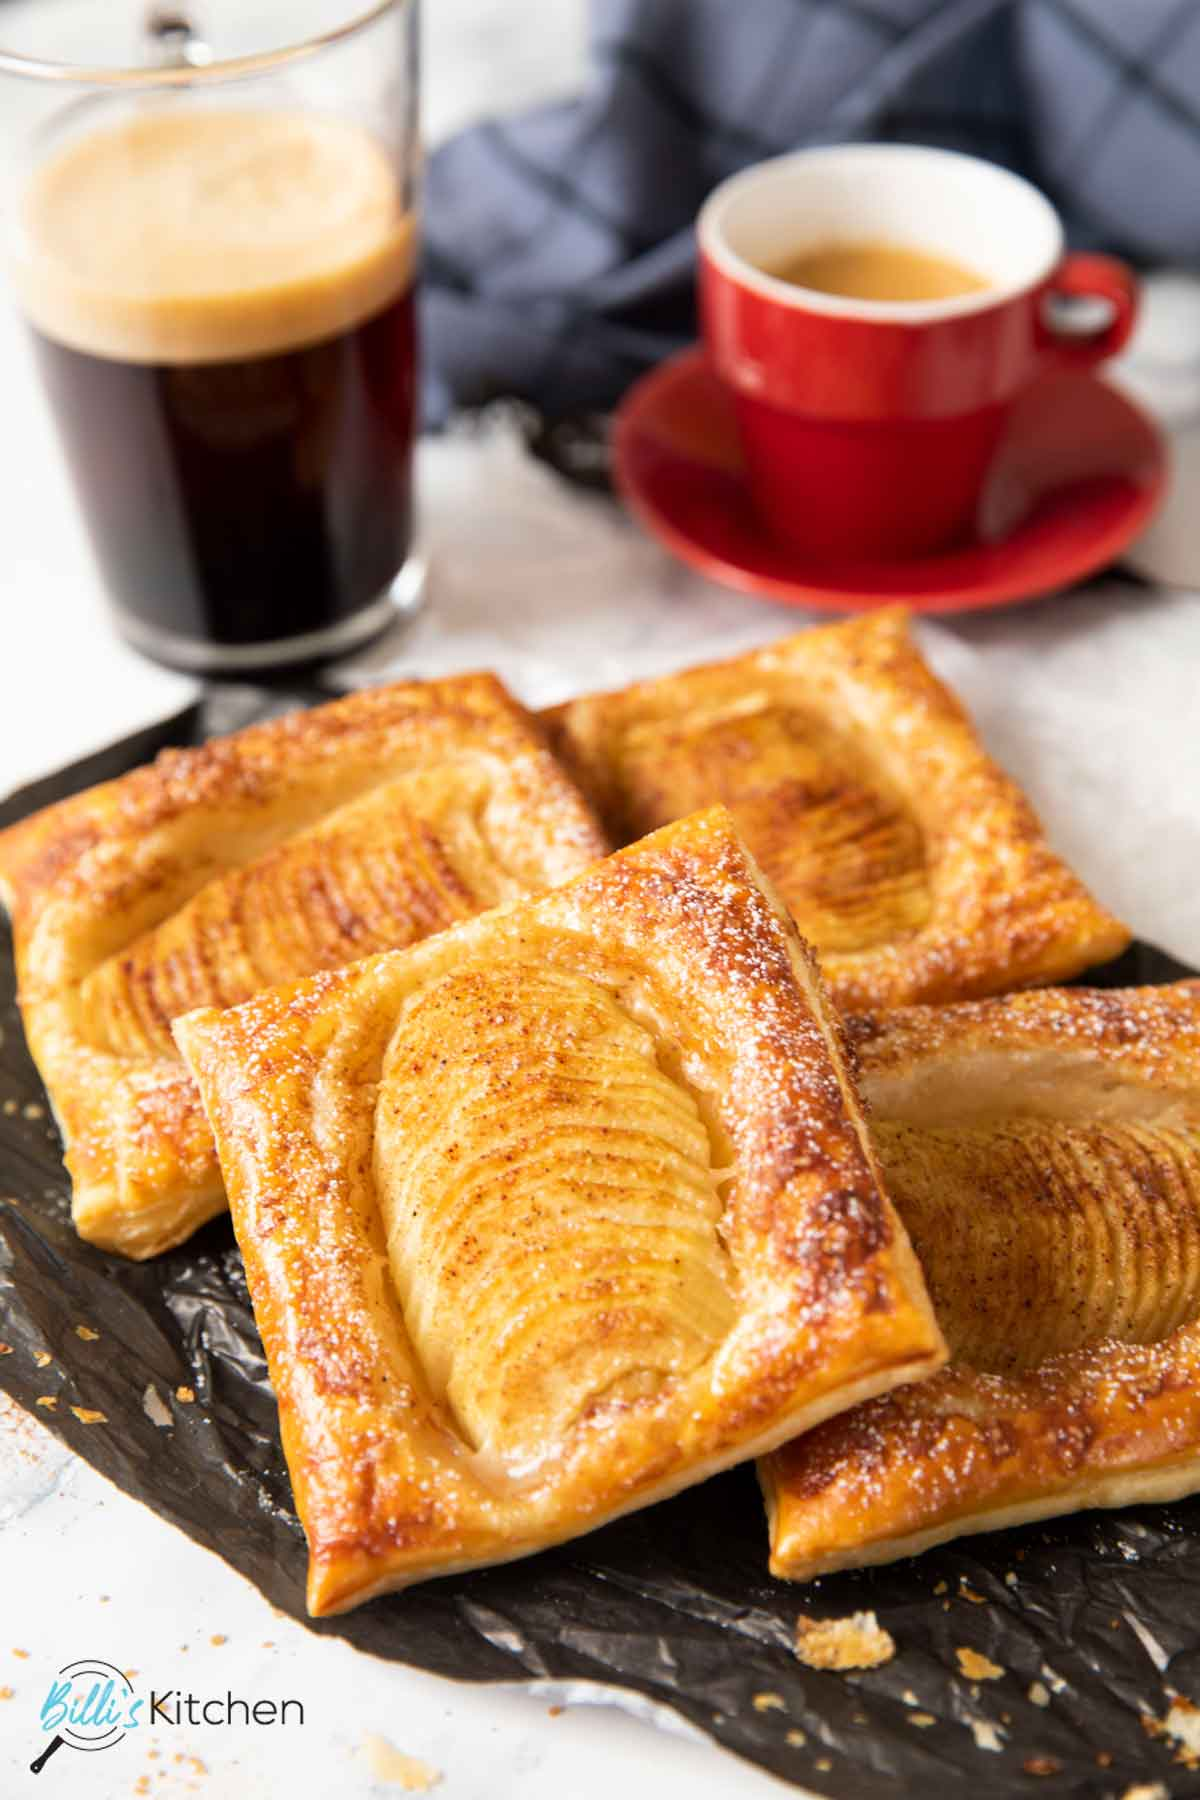 Pear tarts with puff pastry, lightly dusted with powdered sugar, served with espresso and coffee.